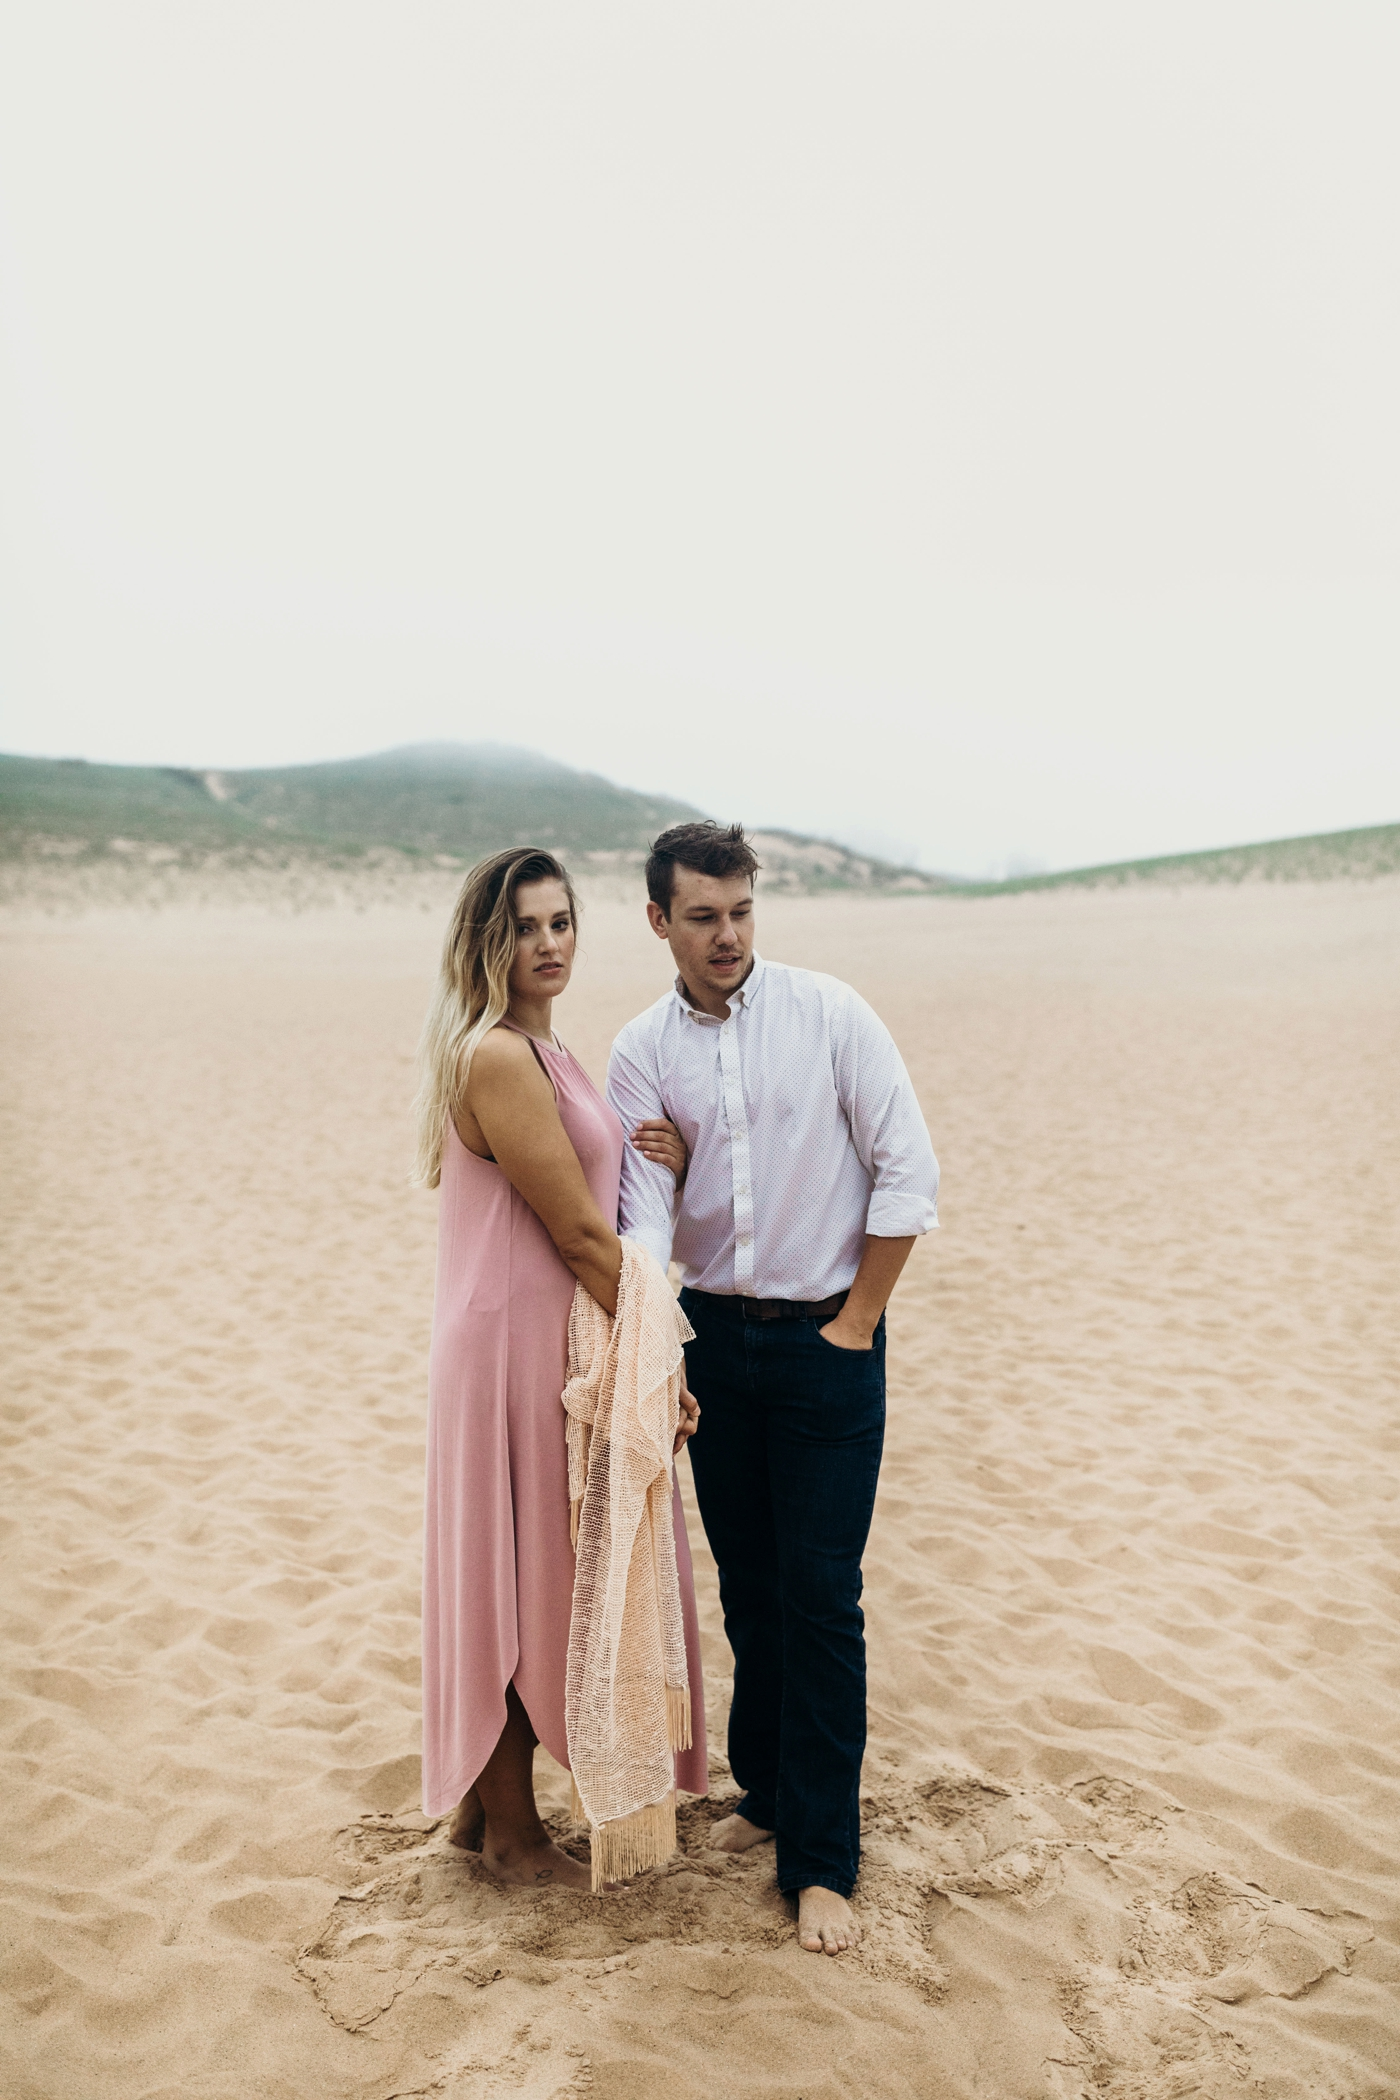 Sleeping_Bear_Dunes_Couples_Adventure_Session_Adventure_Wedding_Photographer_Hiking_with_Heels_Brett+Emily-8.jpg